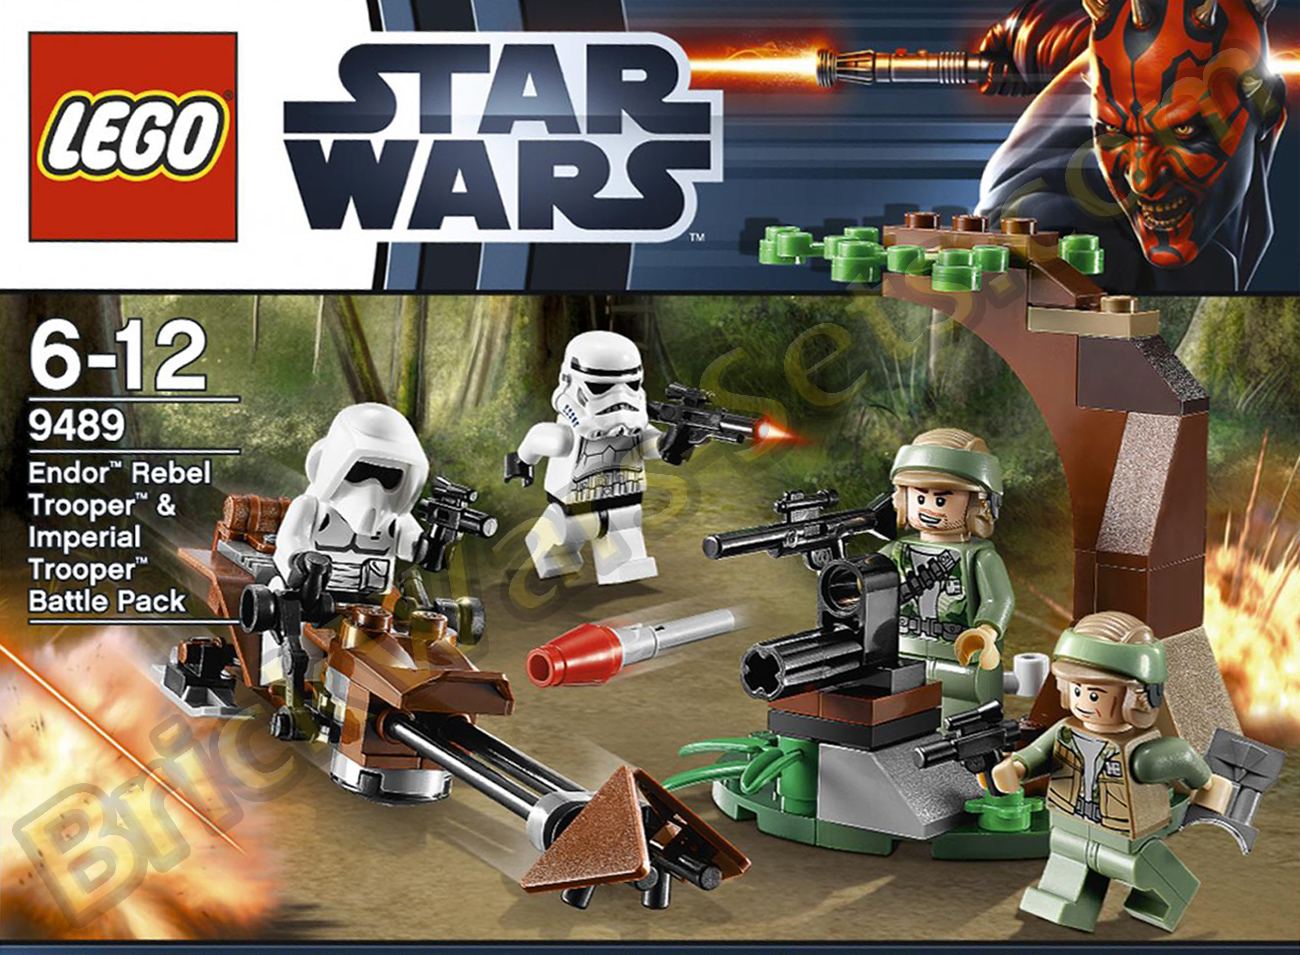 Lego 9489 Endor Rebel Trooper and Imperial Trooper Battle Pack